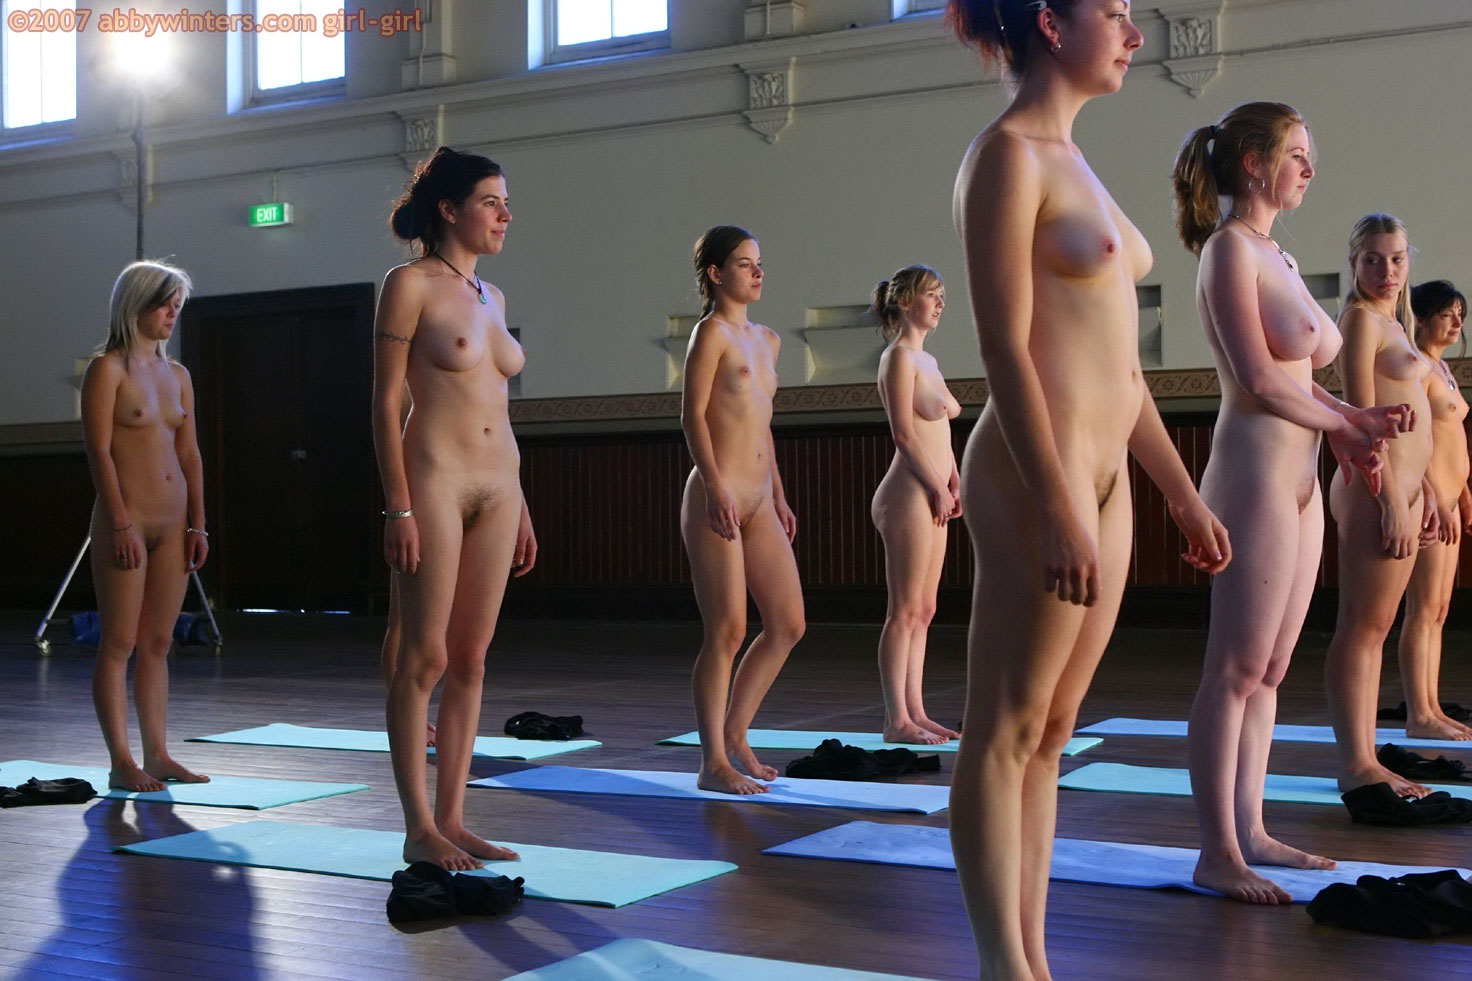 Juan Jordi nudist yoga girls naked pussy horny idea!!!:)